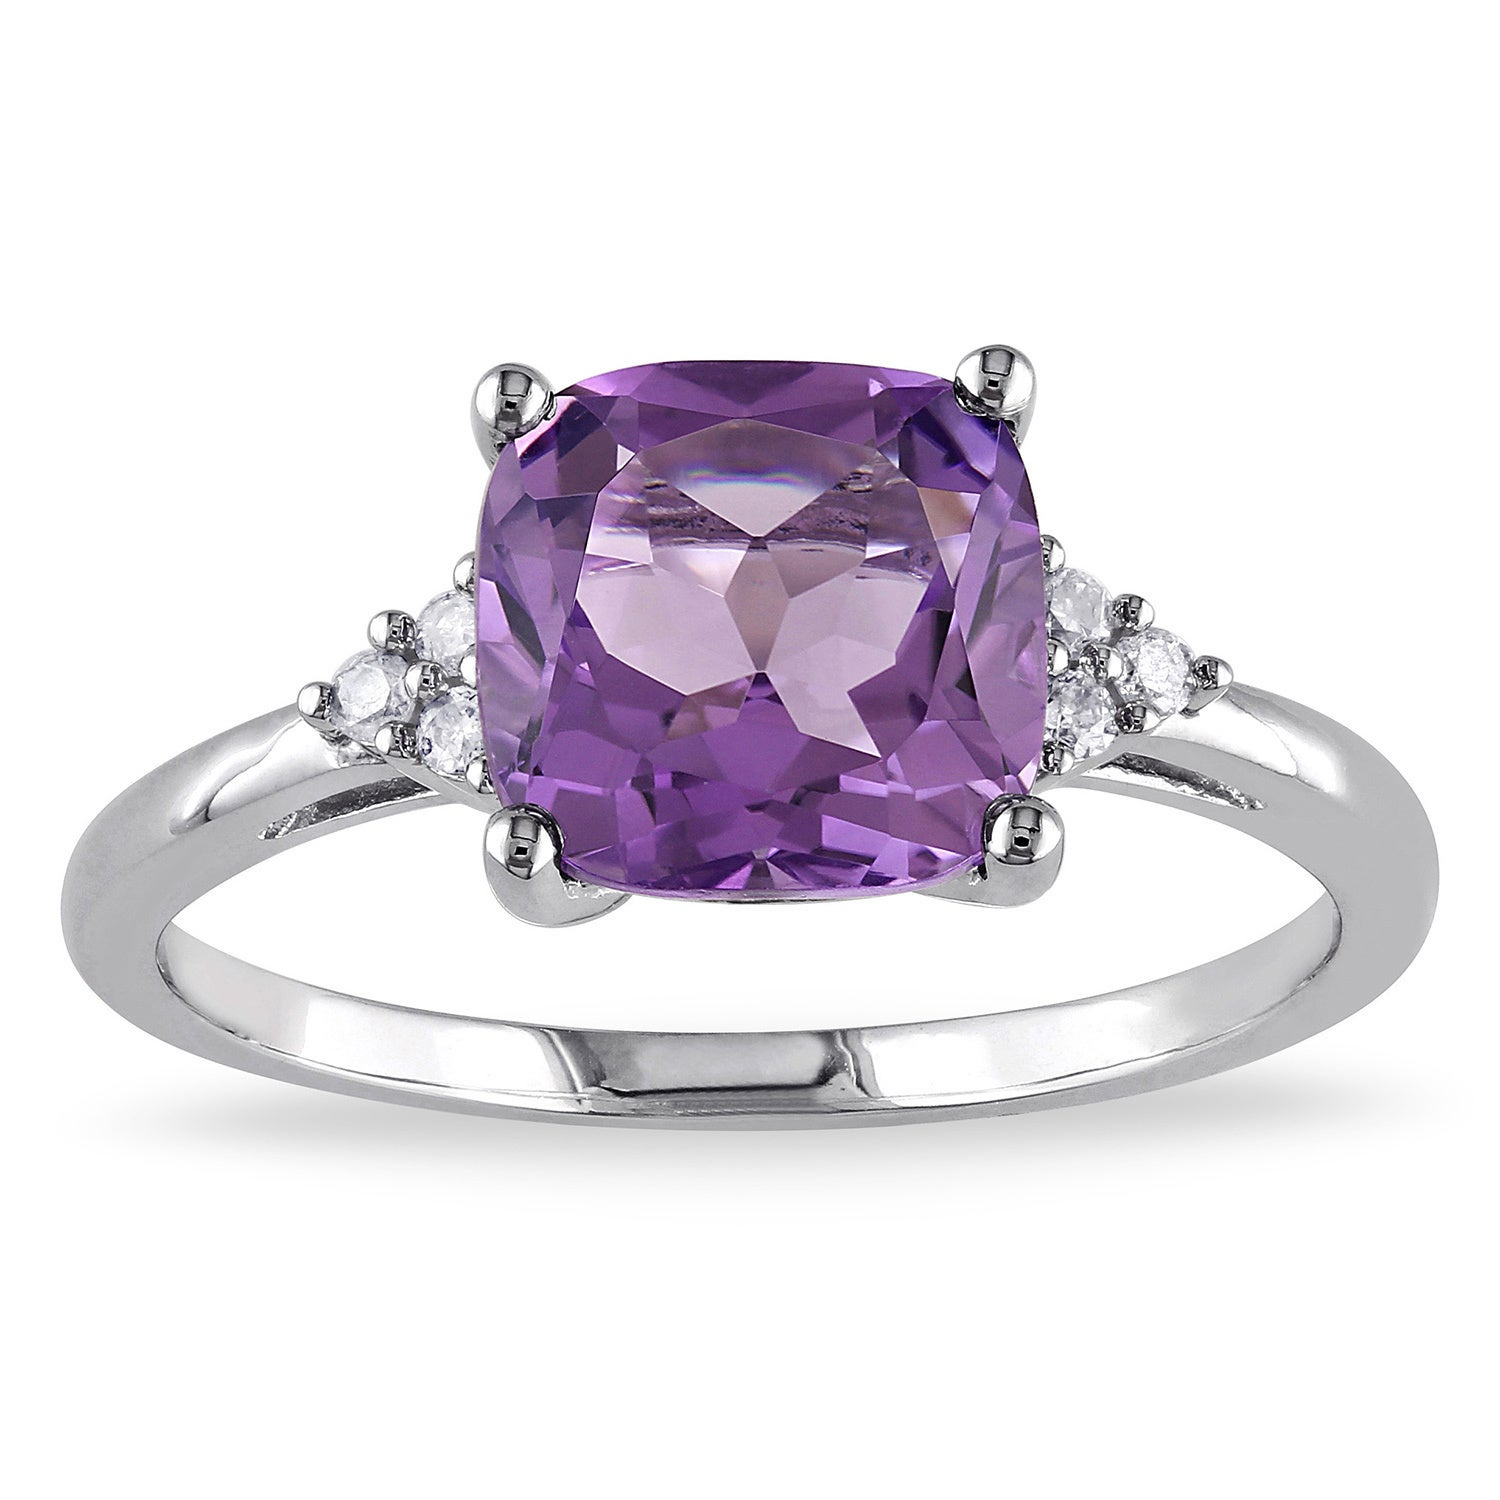 Shop Miadora 10k White Gold Amethyst and Diamond Ring - On Sale - Free  Shipping Today - Overstock.com - 5333317